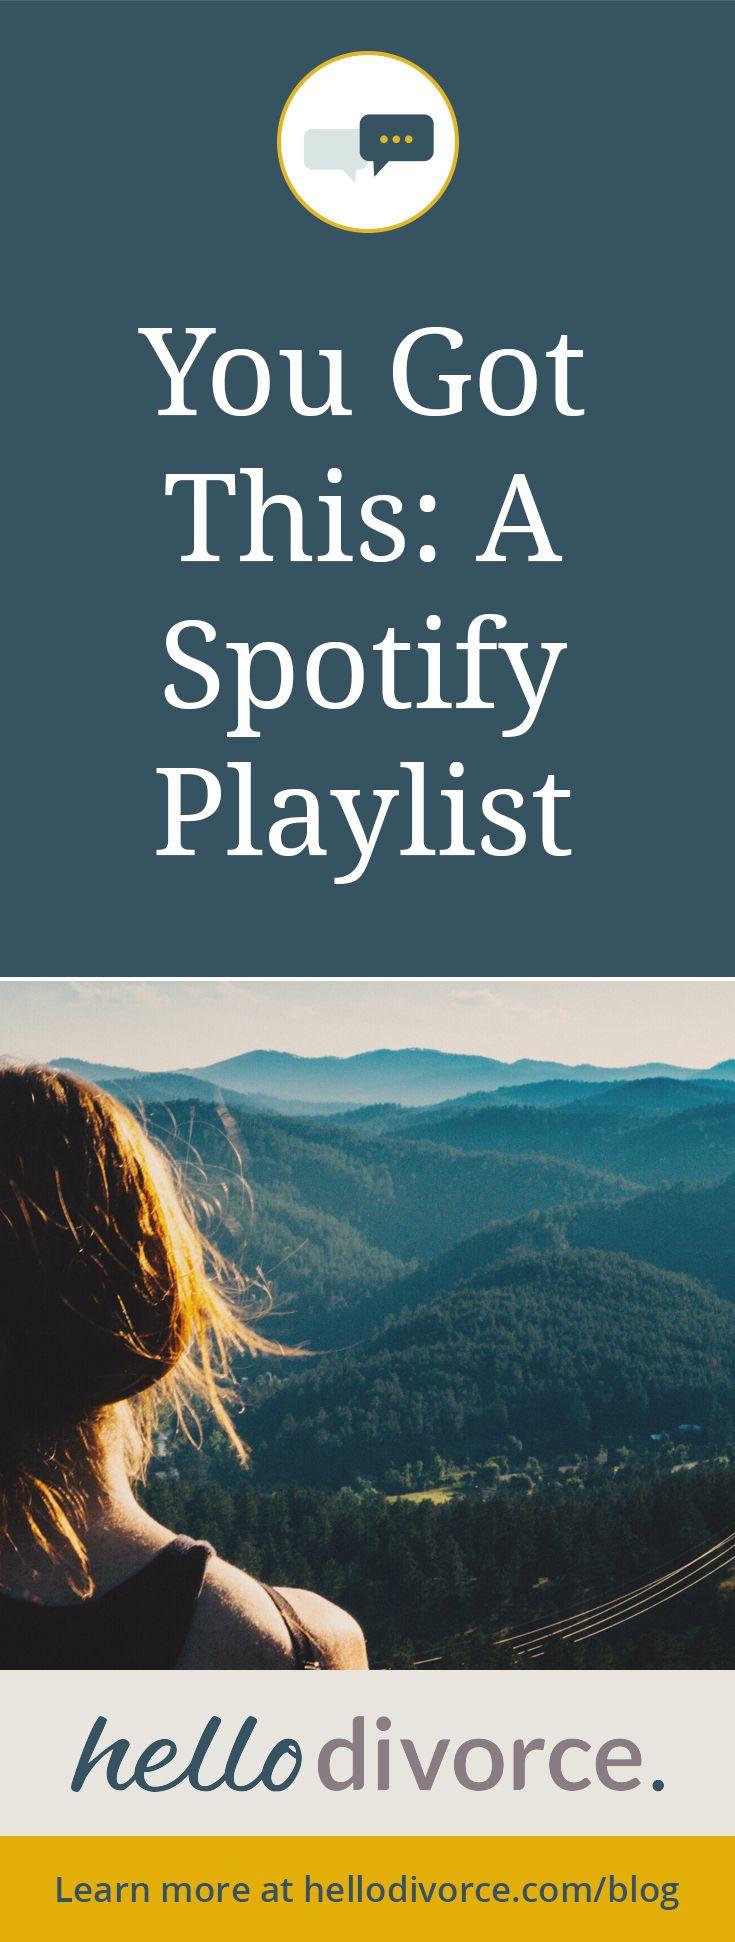 You Got This: A Spotify Playlist for Going Through a